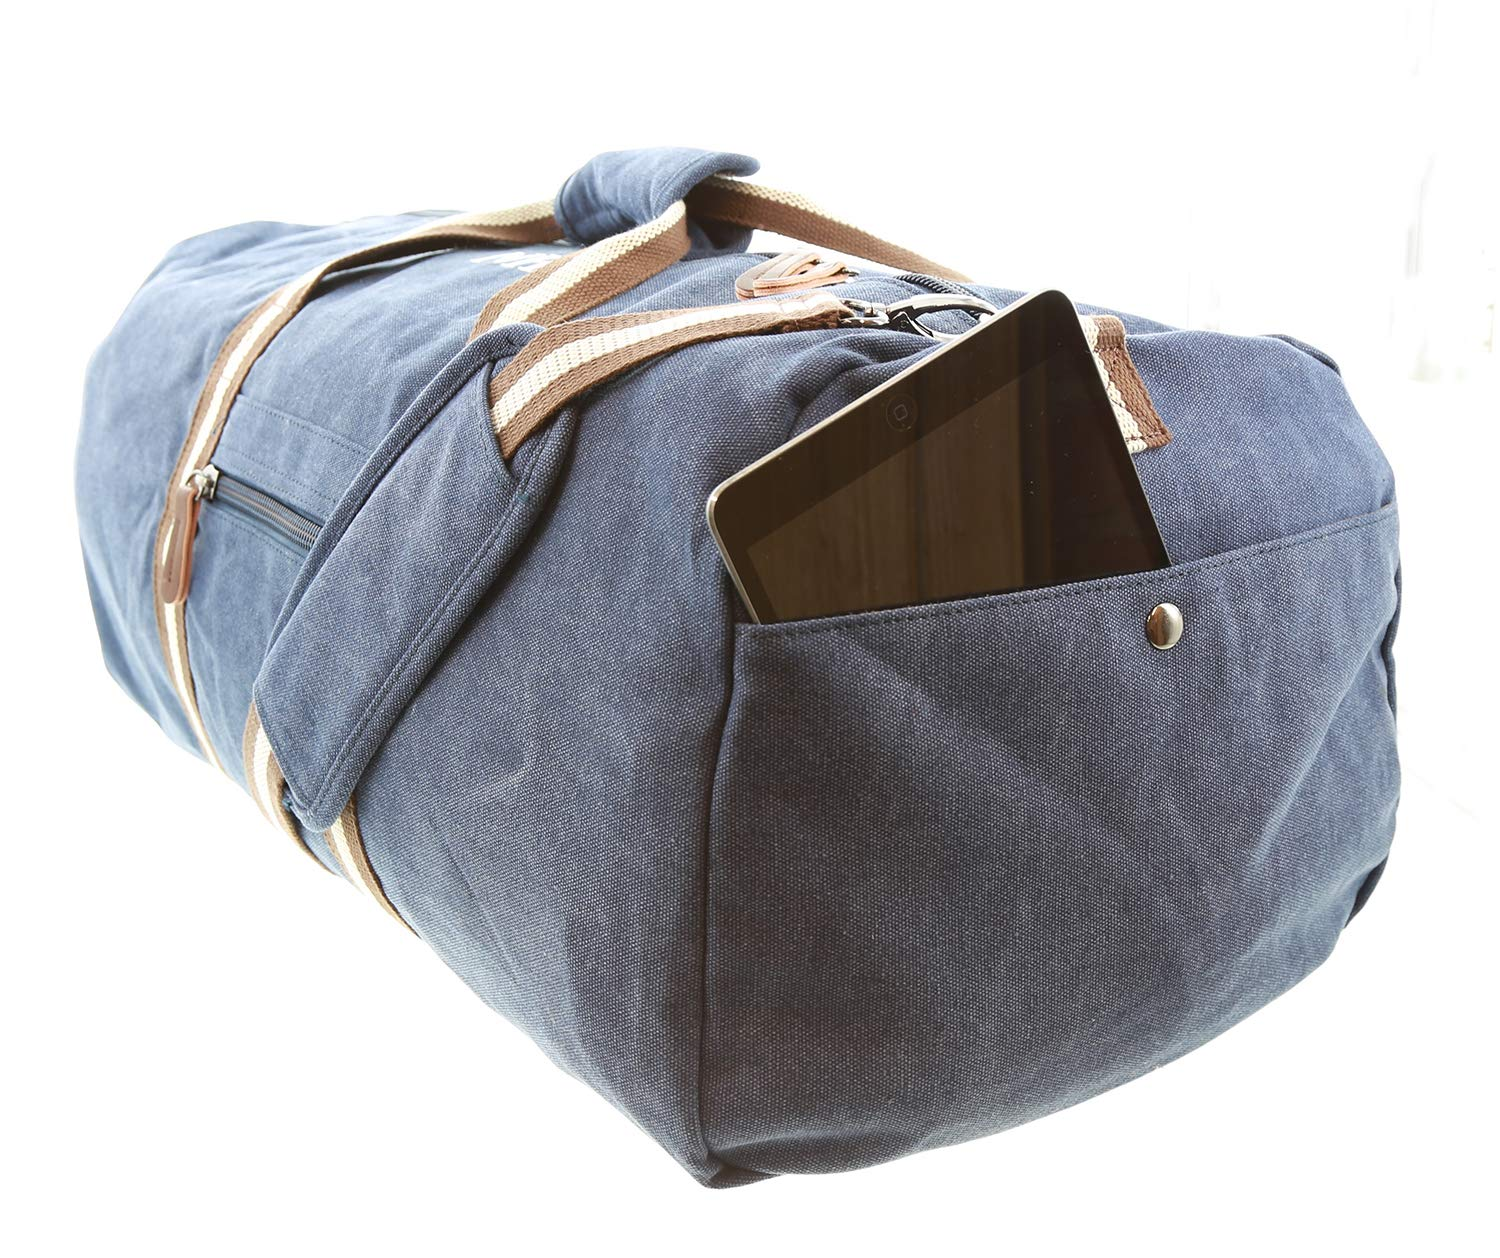 8602fad0e7d6d1 TowelsRus Vintage Canvas Holdall Bag, Weekend Bag, Gym Bag, Carry on Bag ( Personalised, Oxford Navy): Amazon.co.uk: Luggage